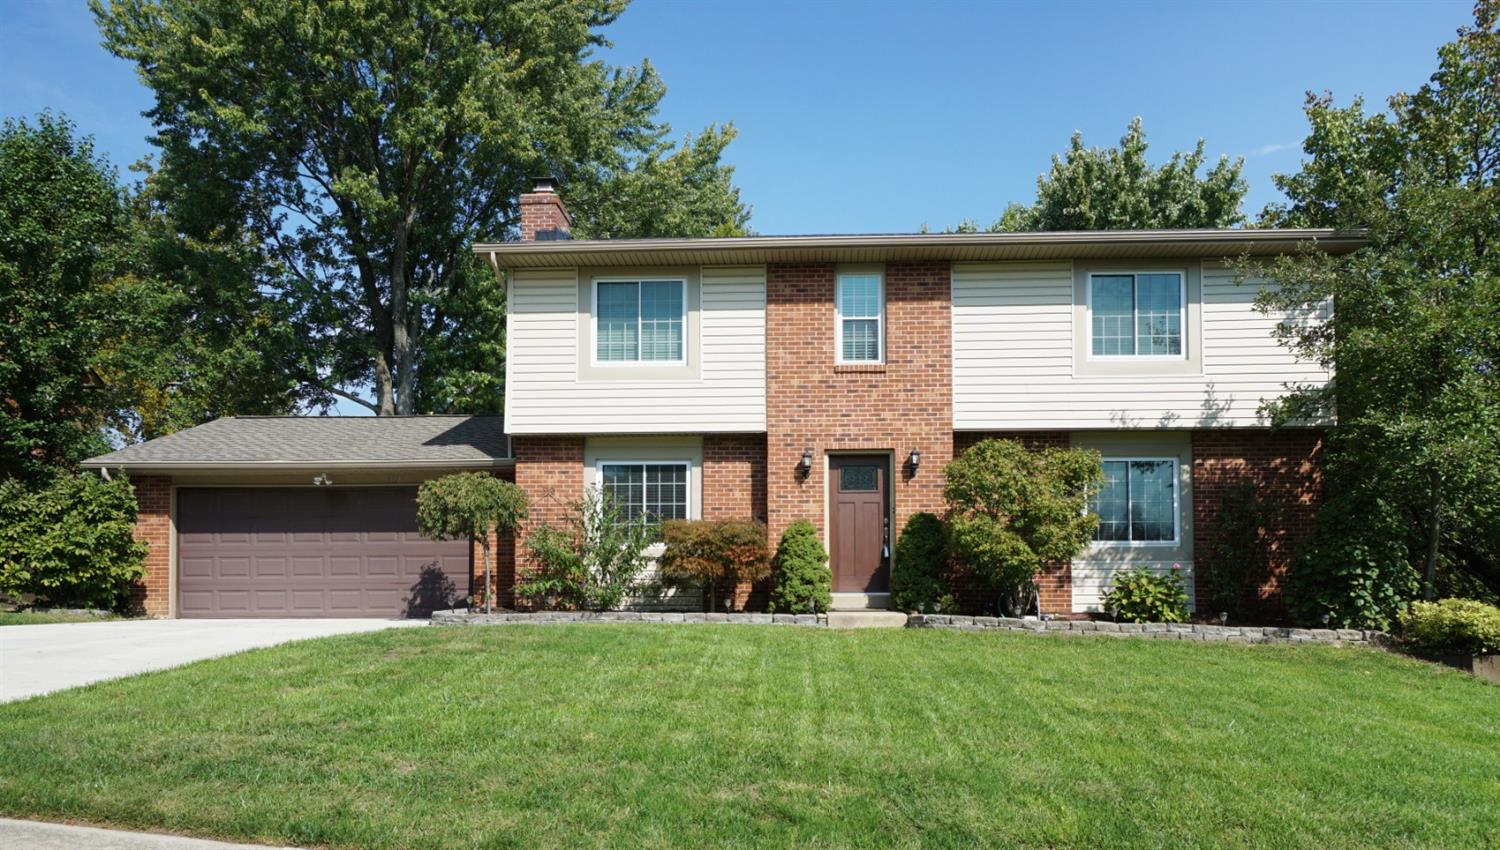 Property for sale at 1378 Parkway Court, Fairfield,  OH 45014